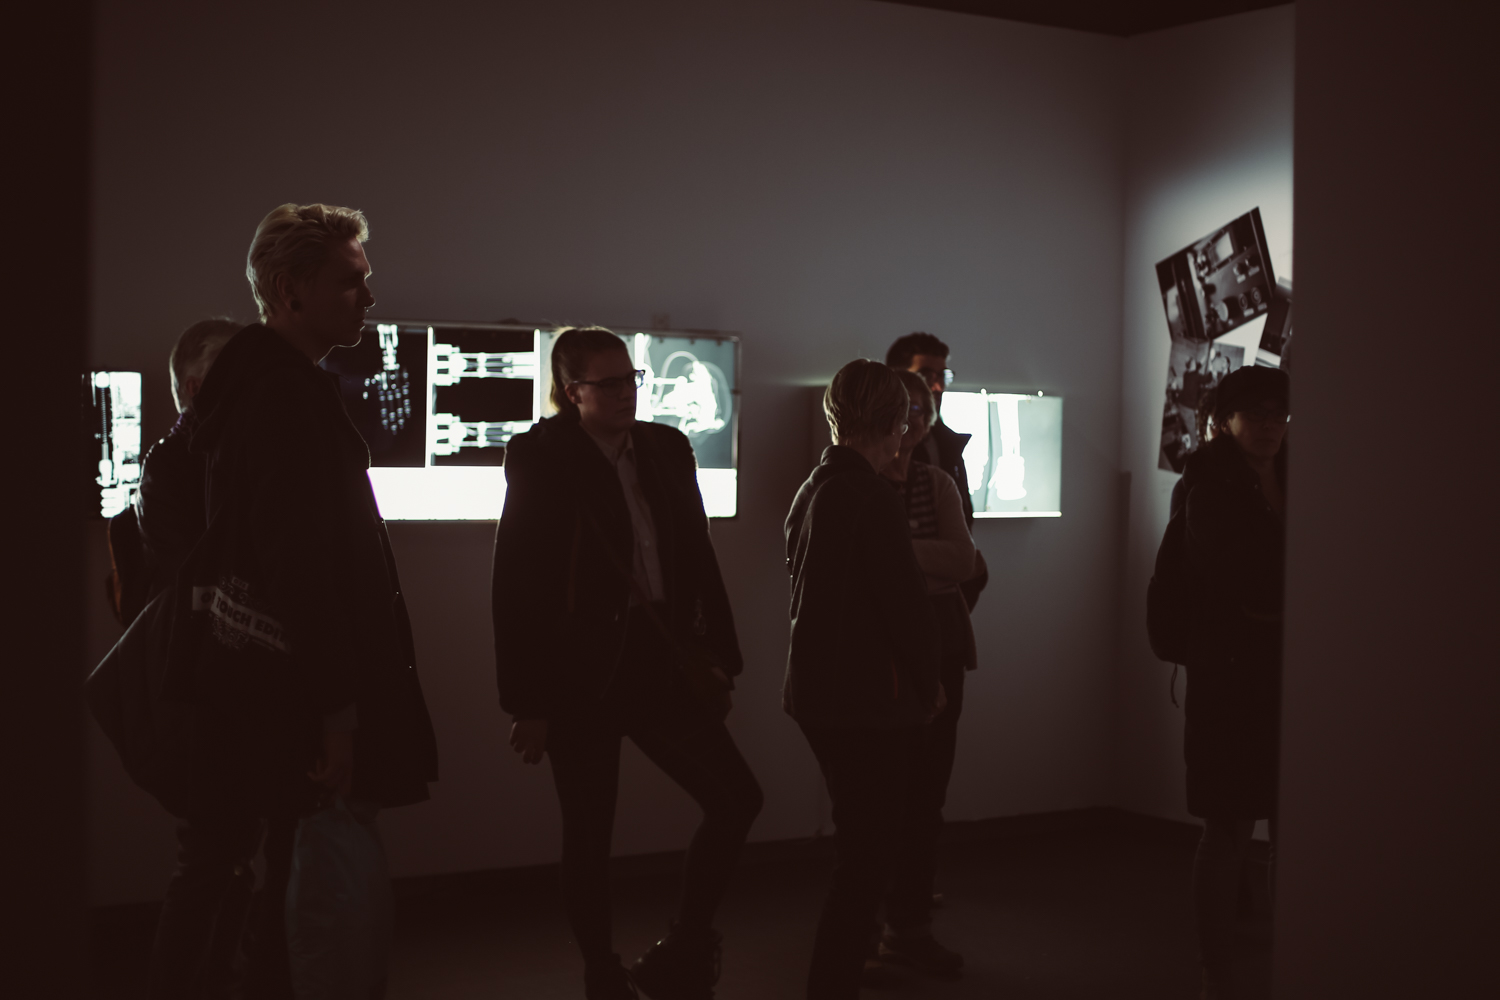 Nick Veasey - Inside Out X-ray exhibition at Fotografiska, Stockholm